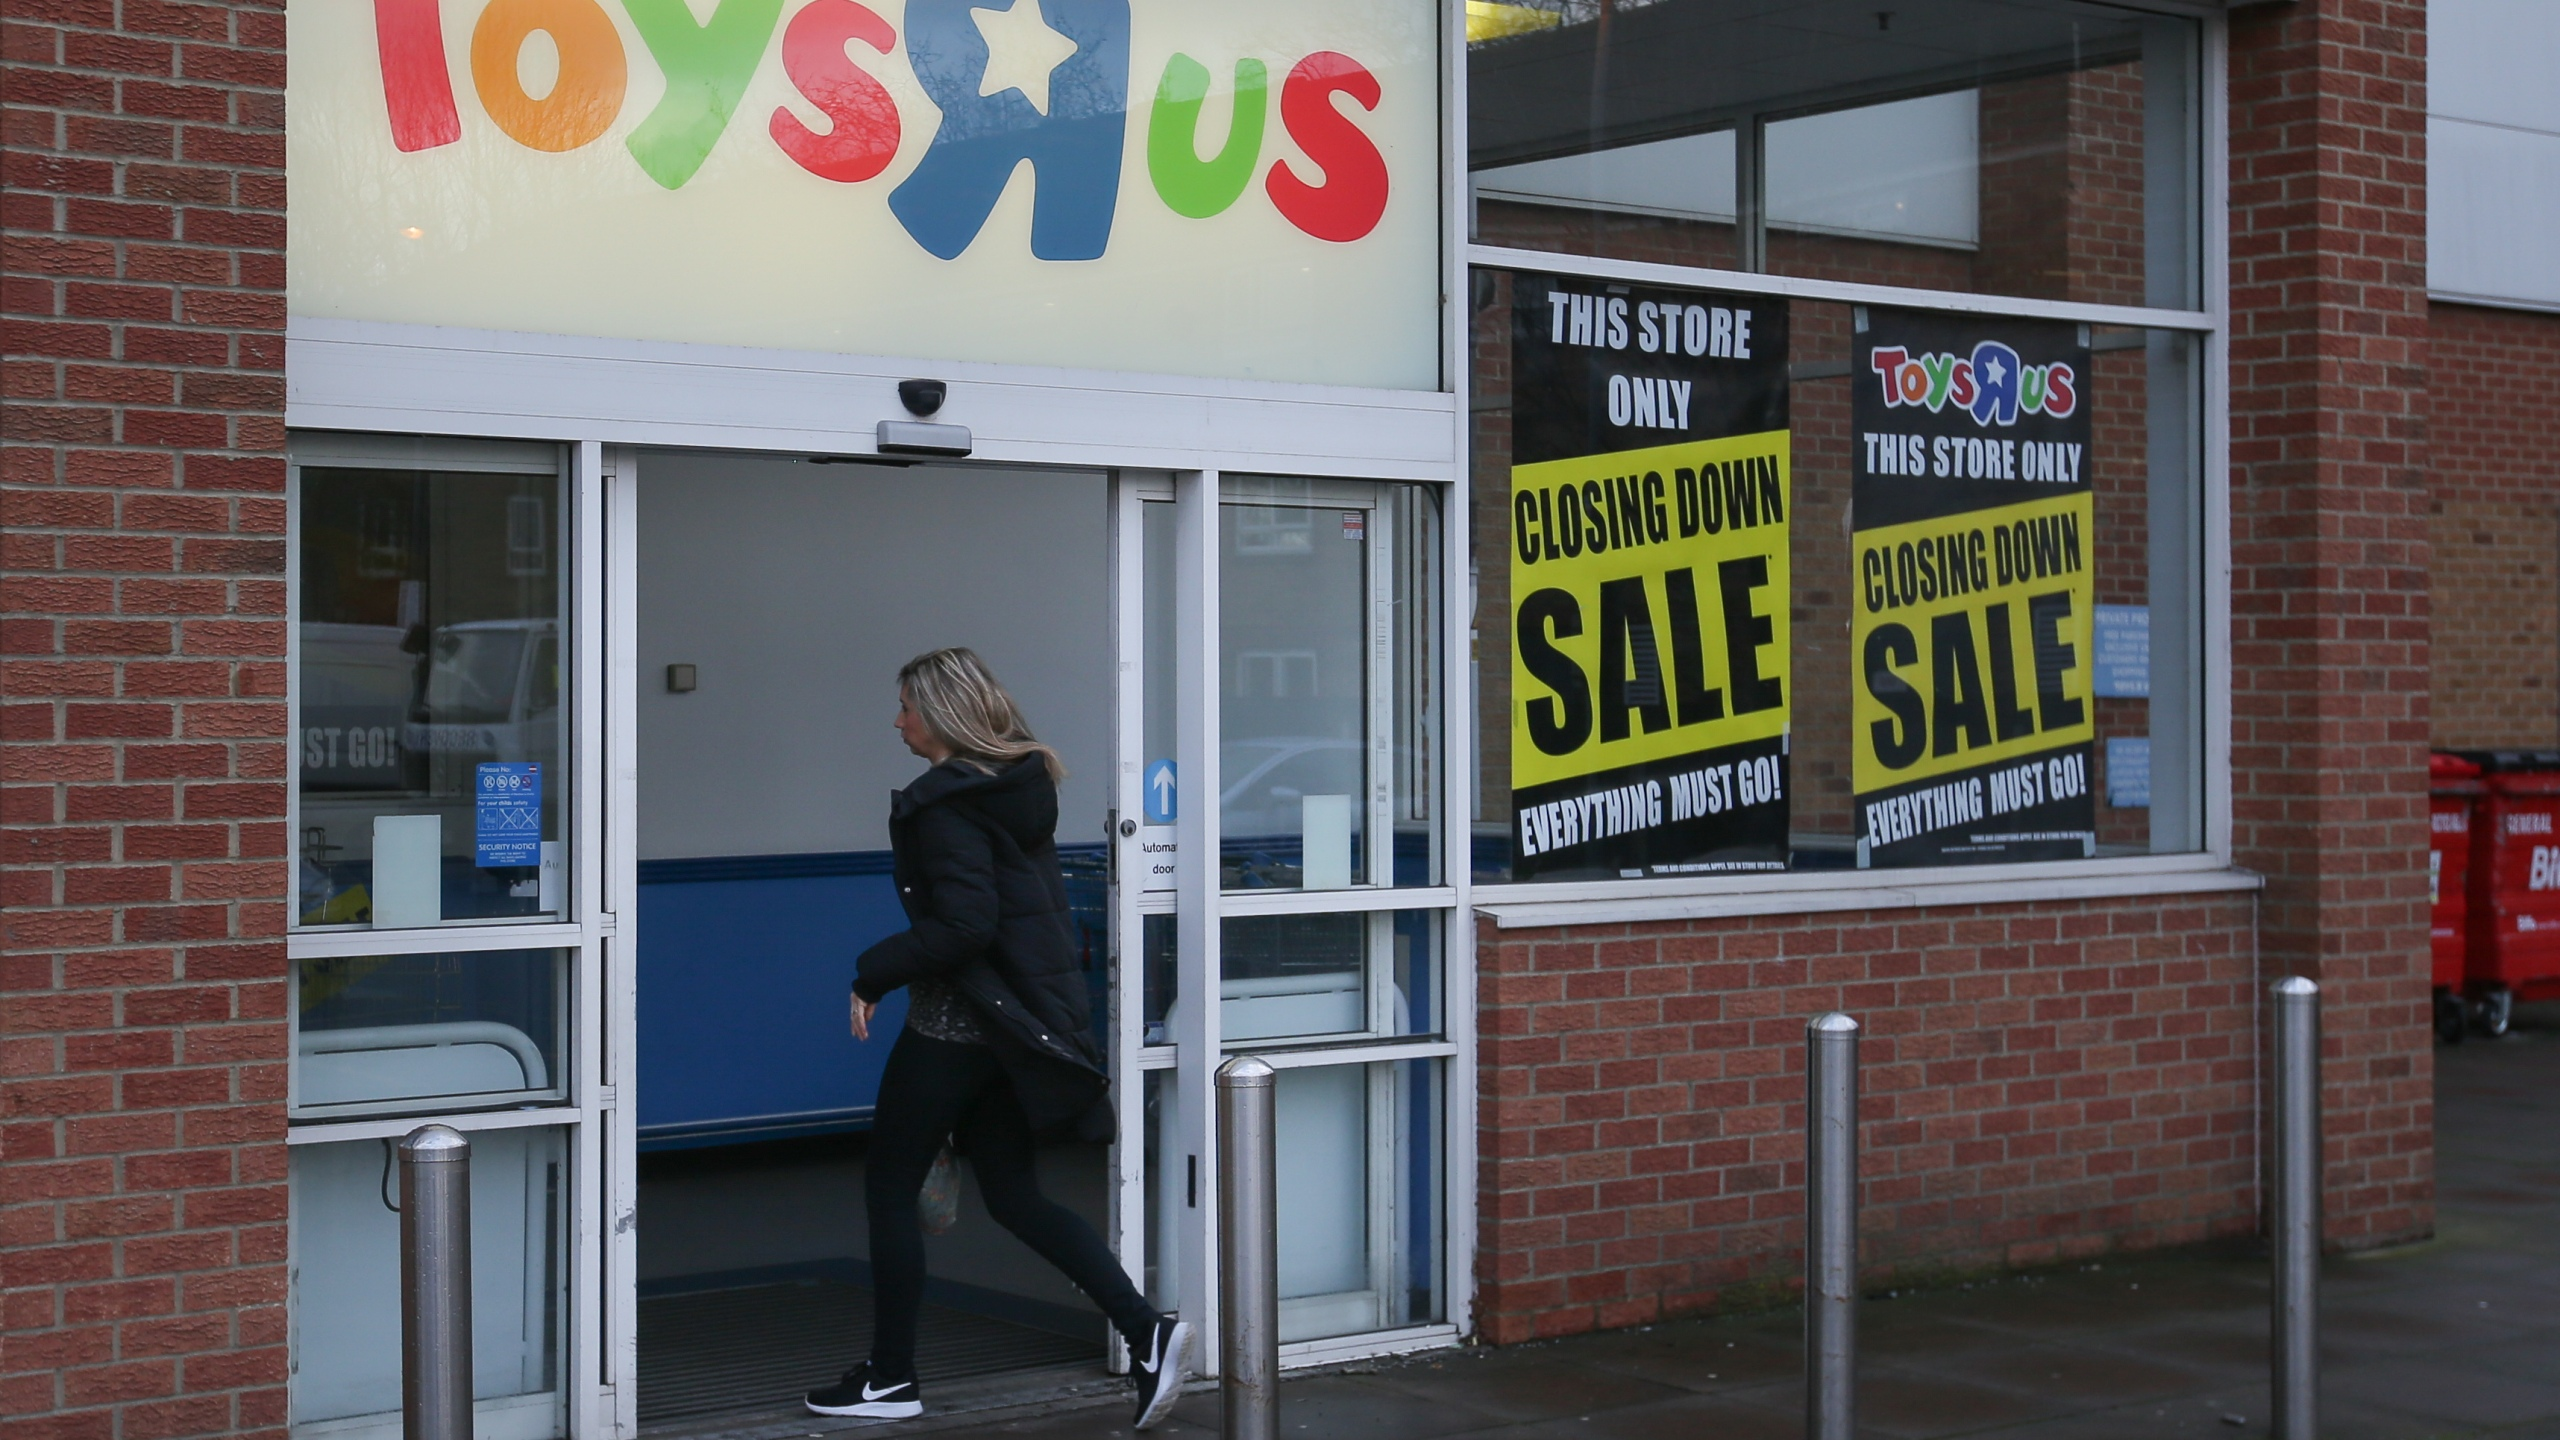 A customer walks inside a Toys 'R' Us store with 'closing down sale' signs in the windows in south London on February 9, 2018. (Credit: DANIEL LEAL-OLIVAS/AFP/Getty Images)